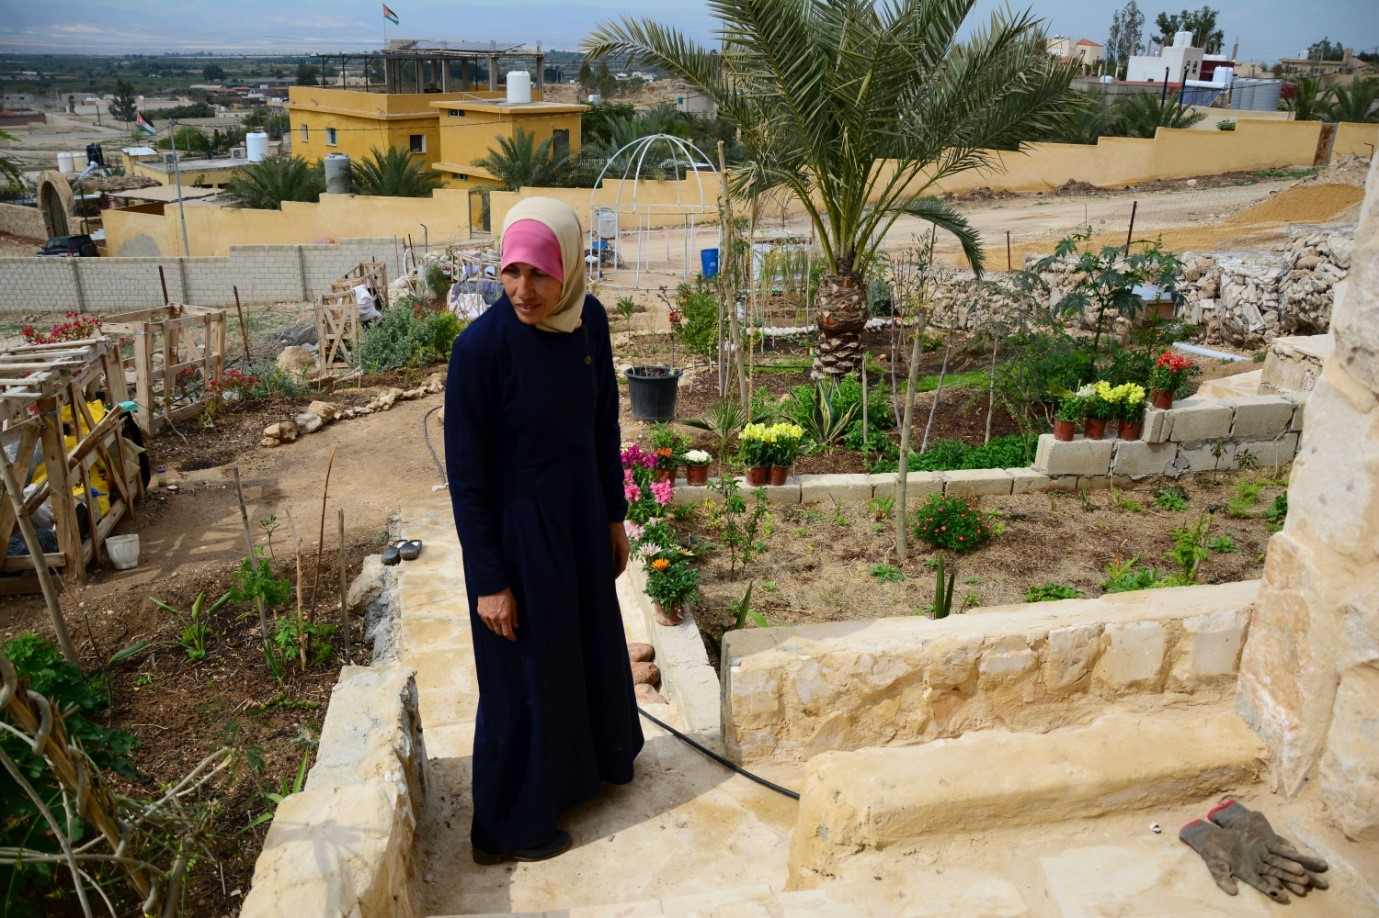 Desert green: Jordanians on frontline of climate change turn to permaculture